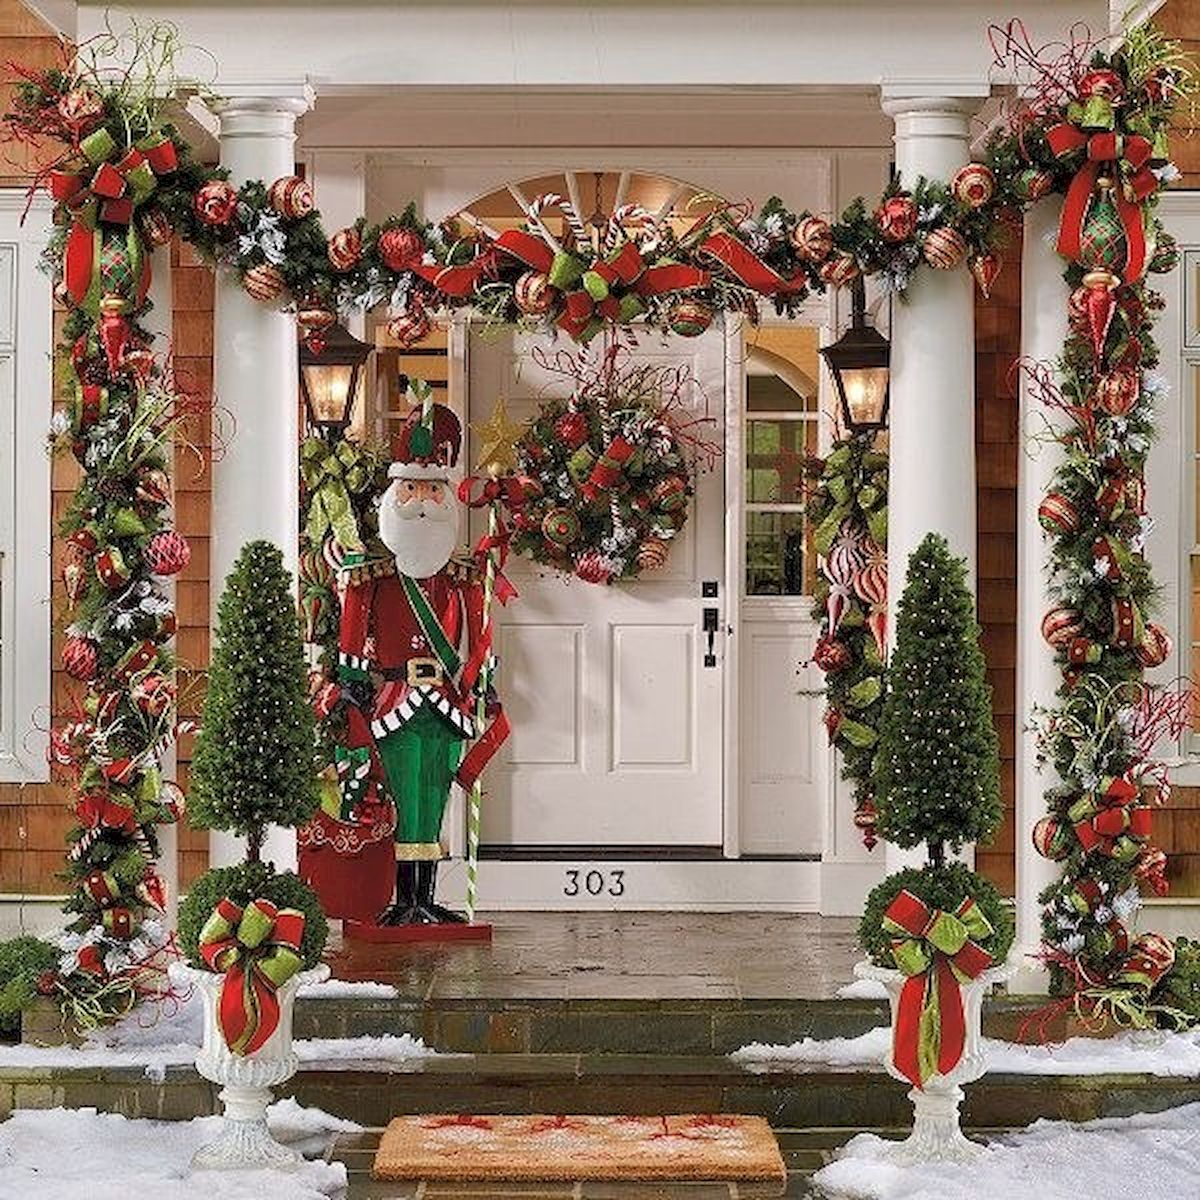 50 stunning christmas front porch decor ideas and design (1)